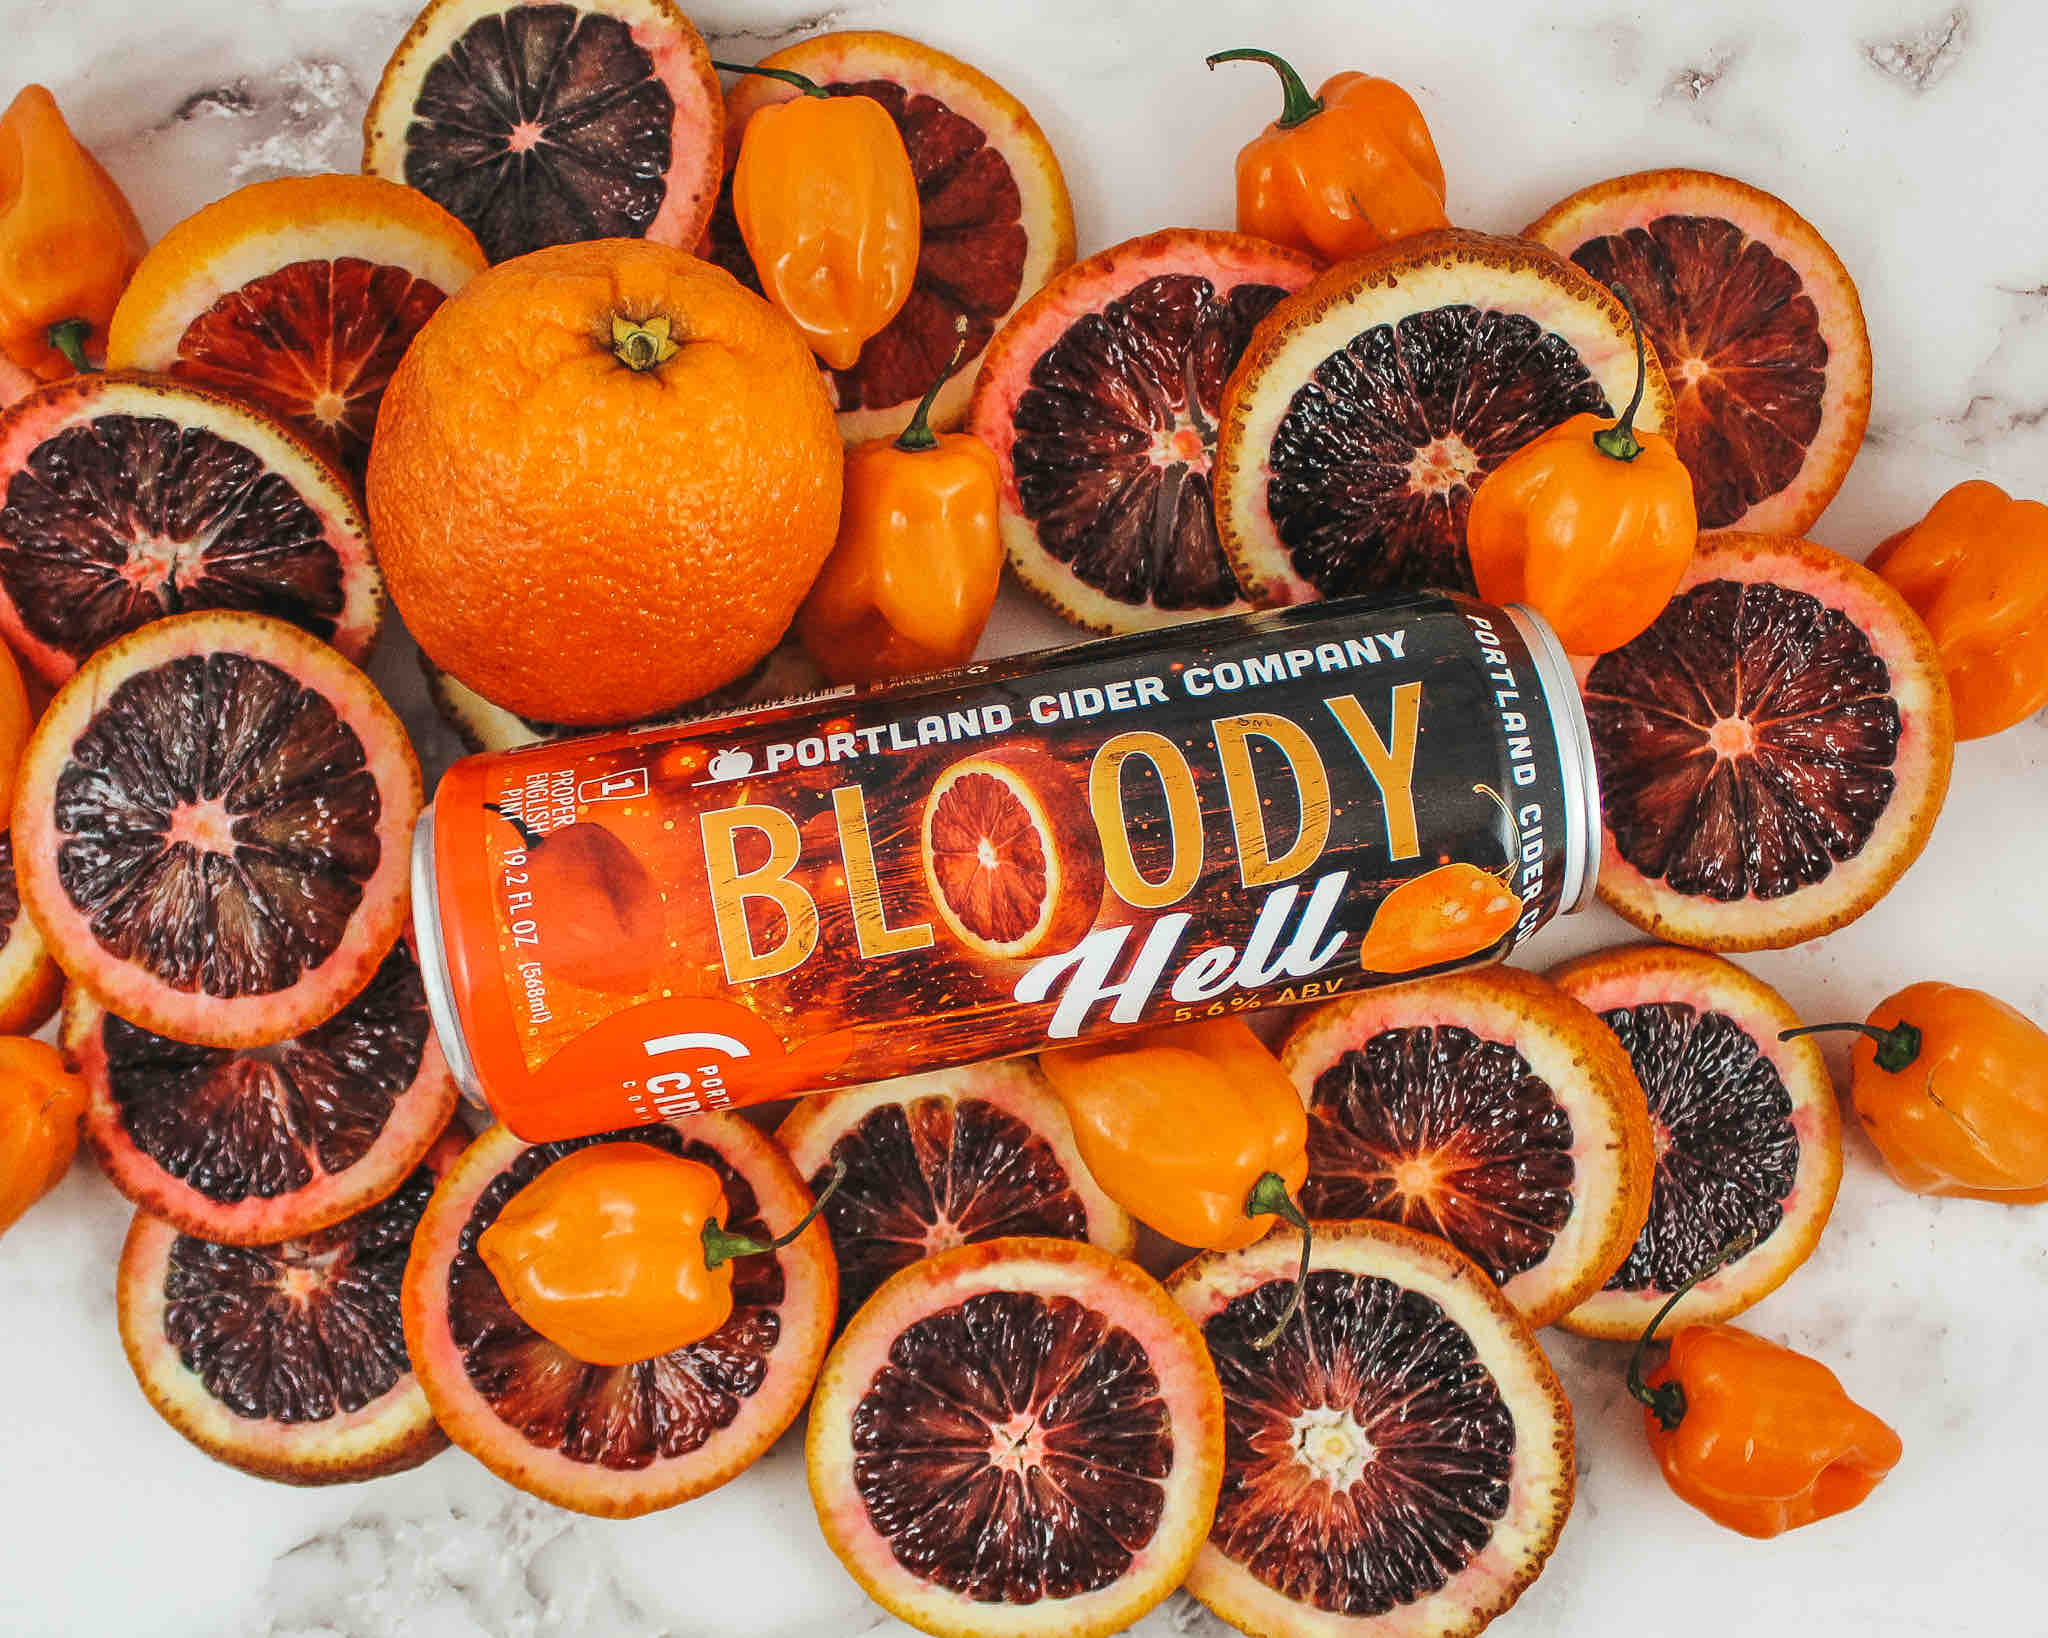 image of Bloody Hell courtesy of Portland Cider Co.